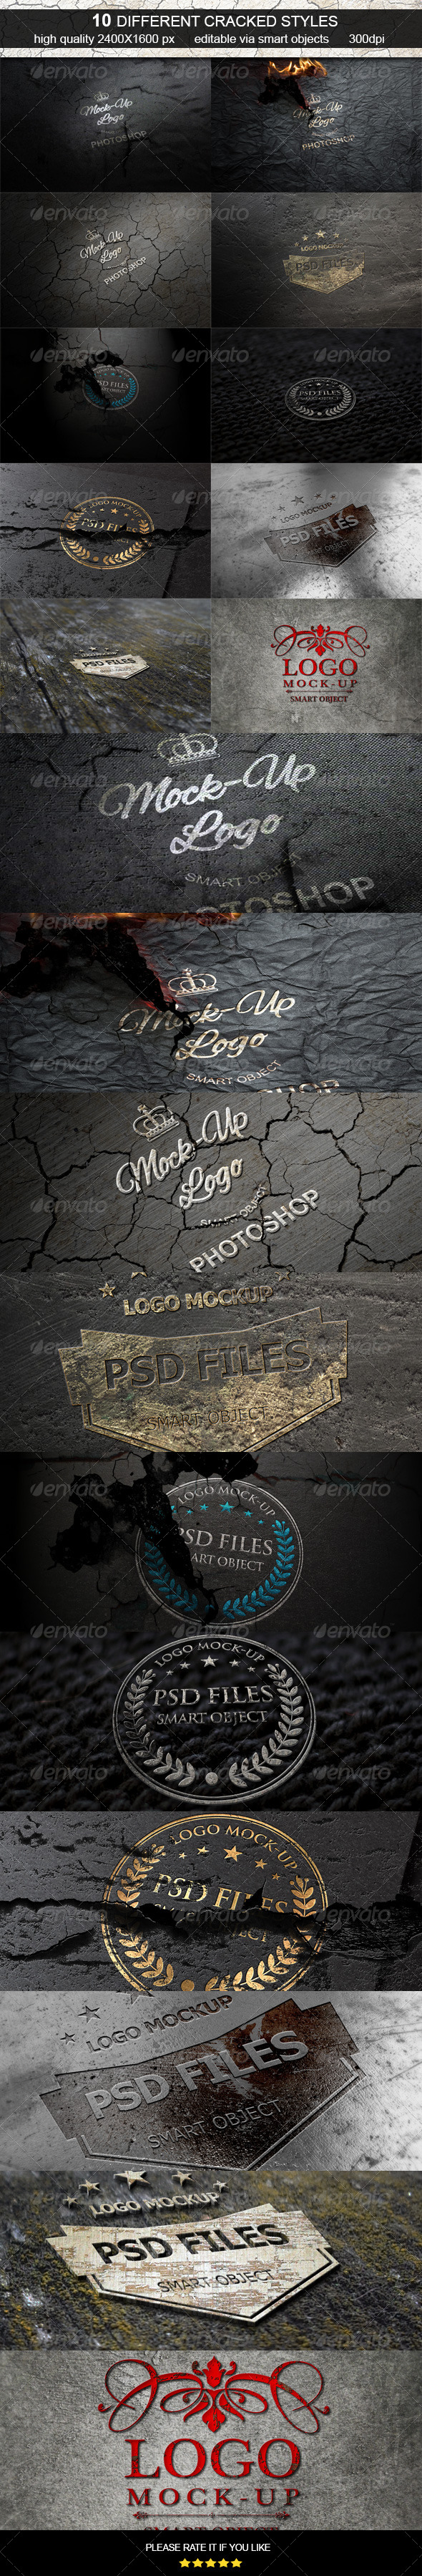 Cracked Logo Mock-Up  - Logo Product Mock-Ups